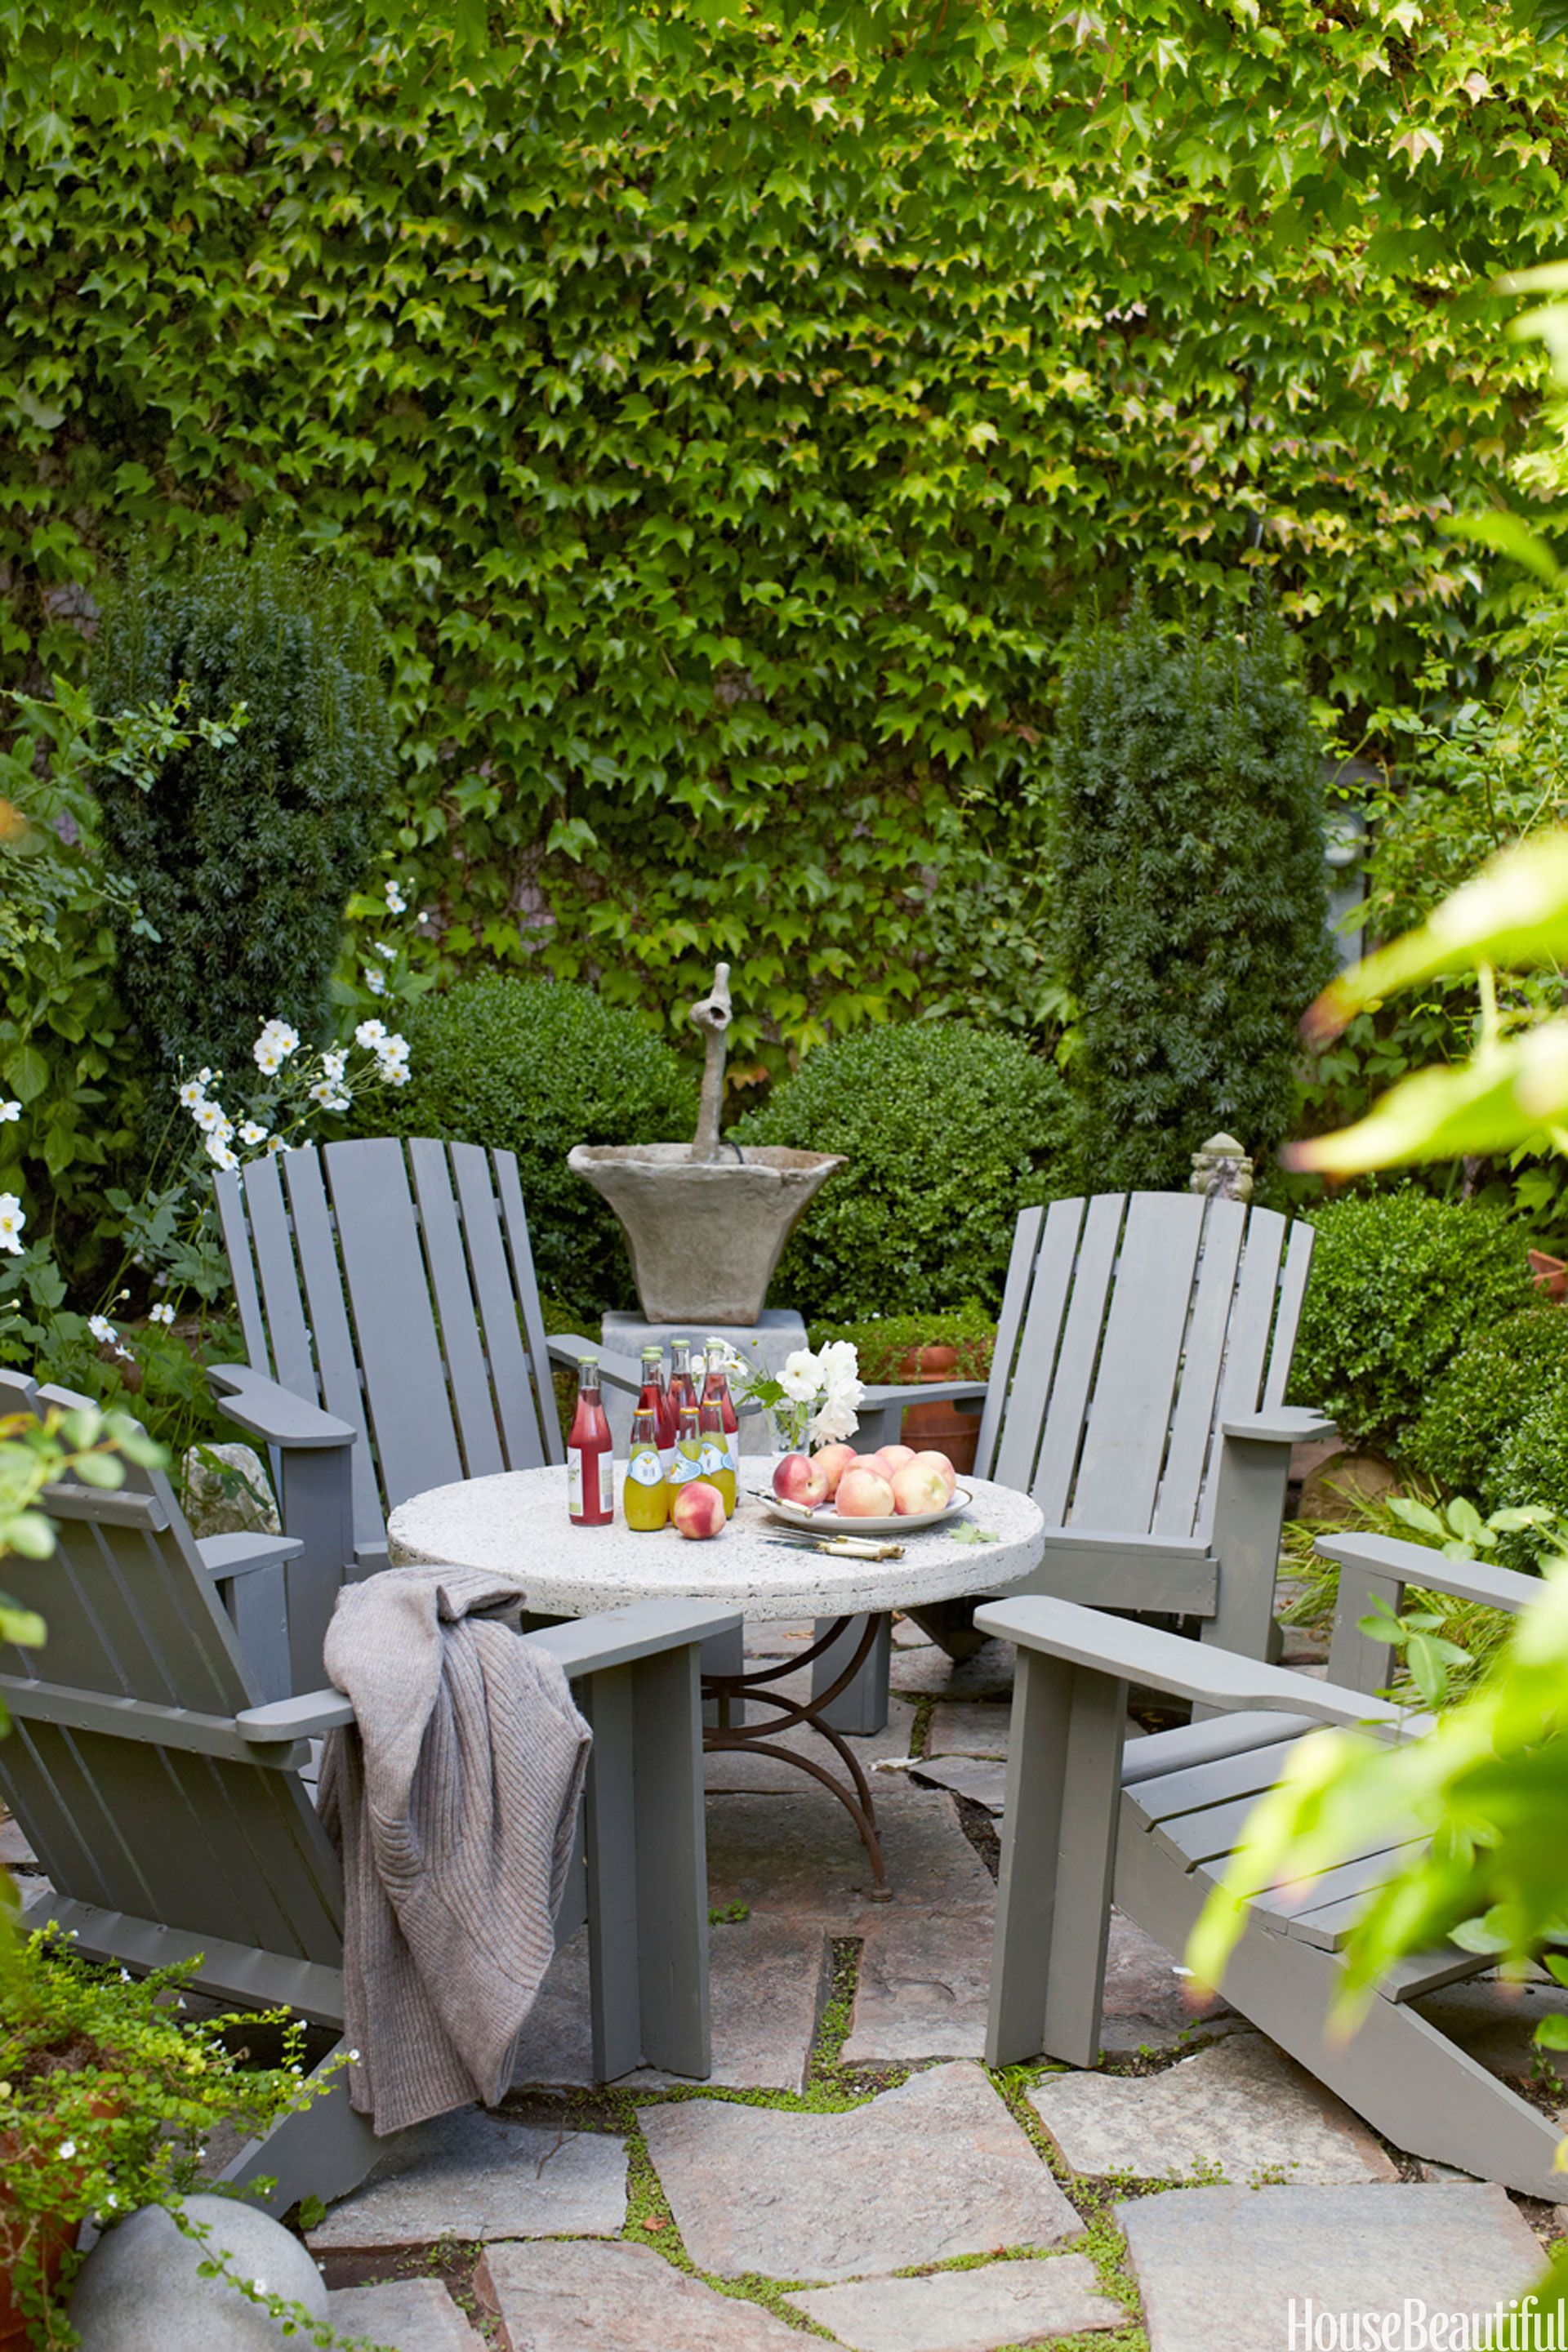 Top Pin of the Day: A Small Outdoor Dining Spot